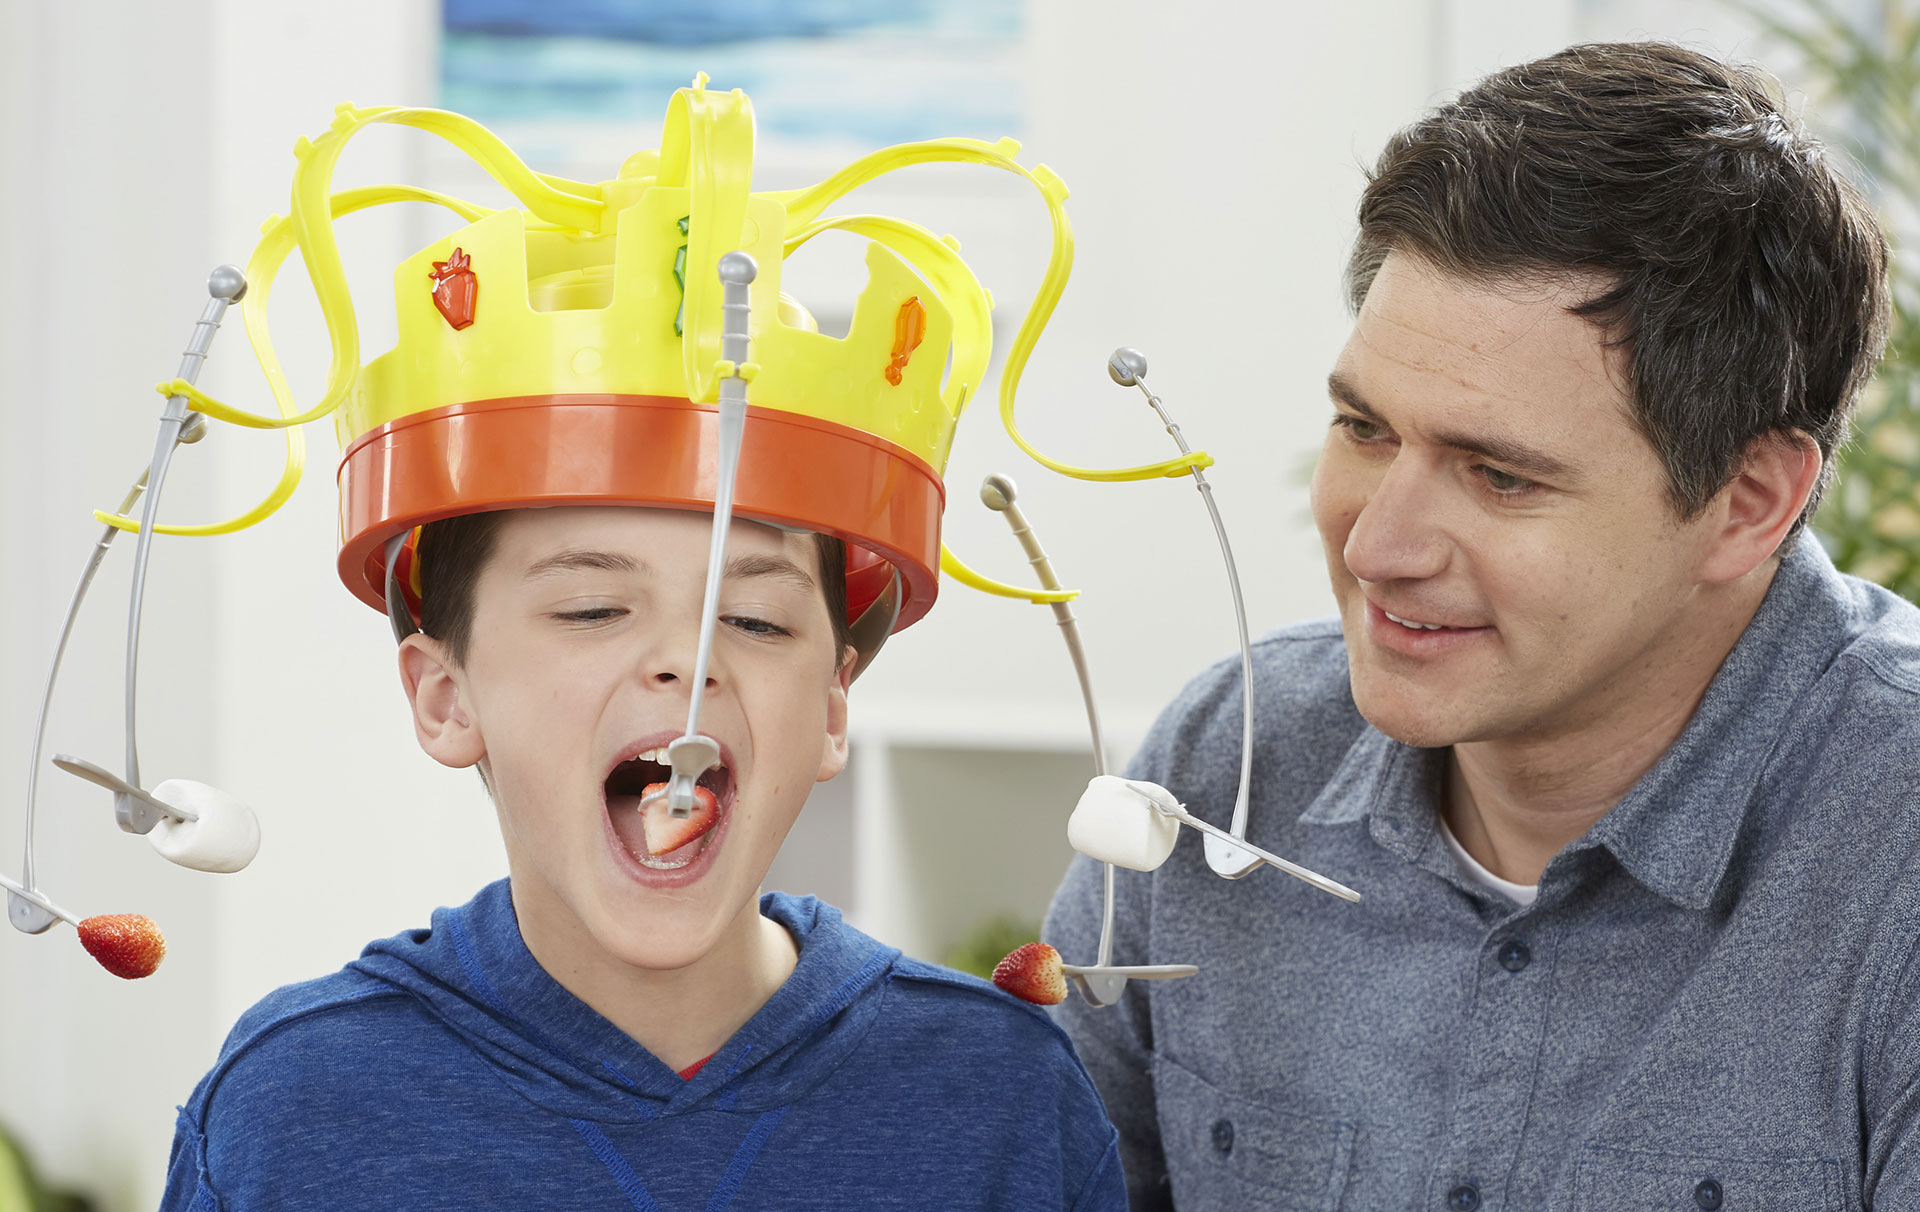 Your Family Needs The Hilarious Chow Crown For Your Next